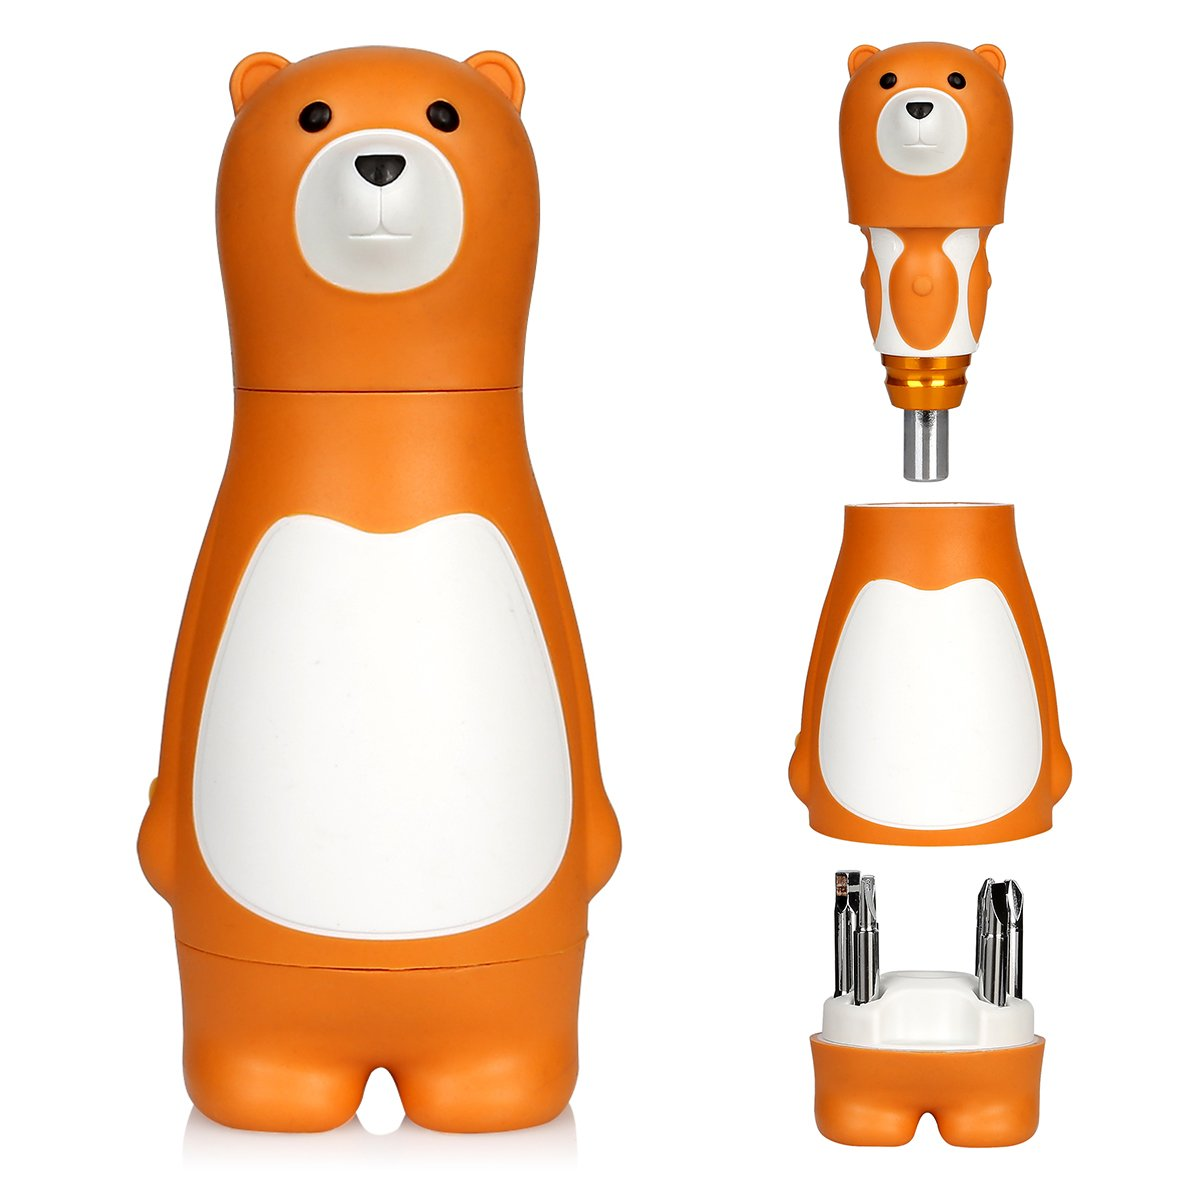 LEANINGTECH 6 Bits 6 in 1 Universal Screw Driver Cute Household Bear Ratcheting Screwdriver, S2 Alloy Steel Hand Tool for Repairing